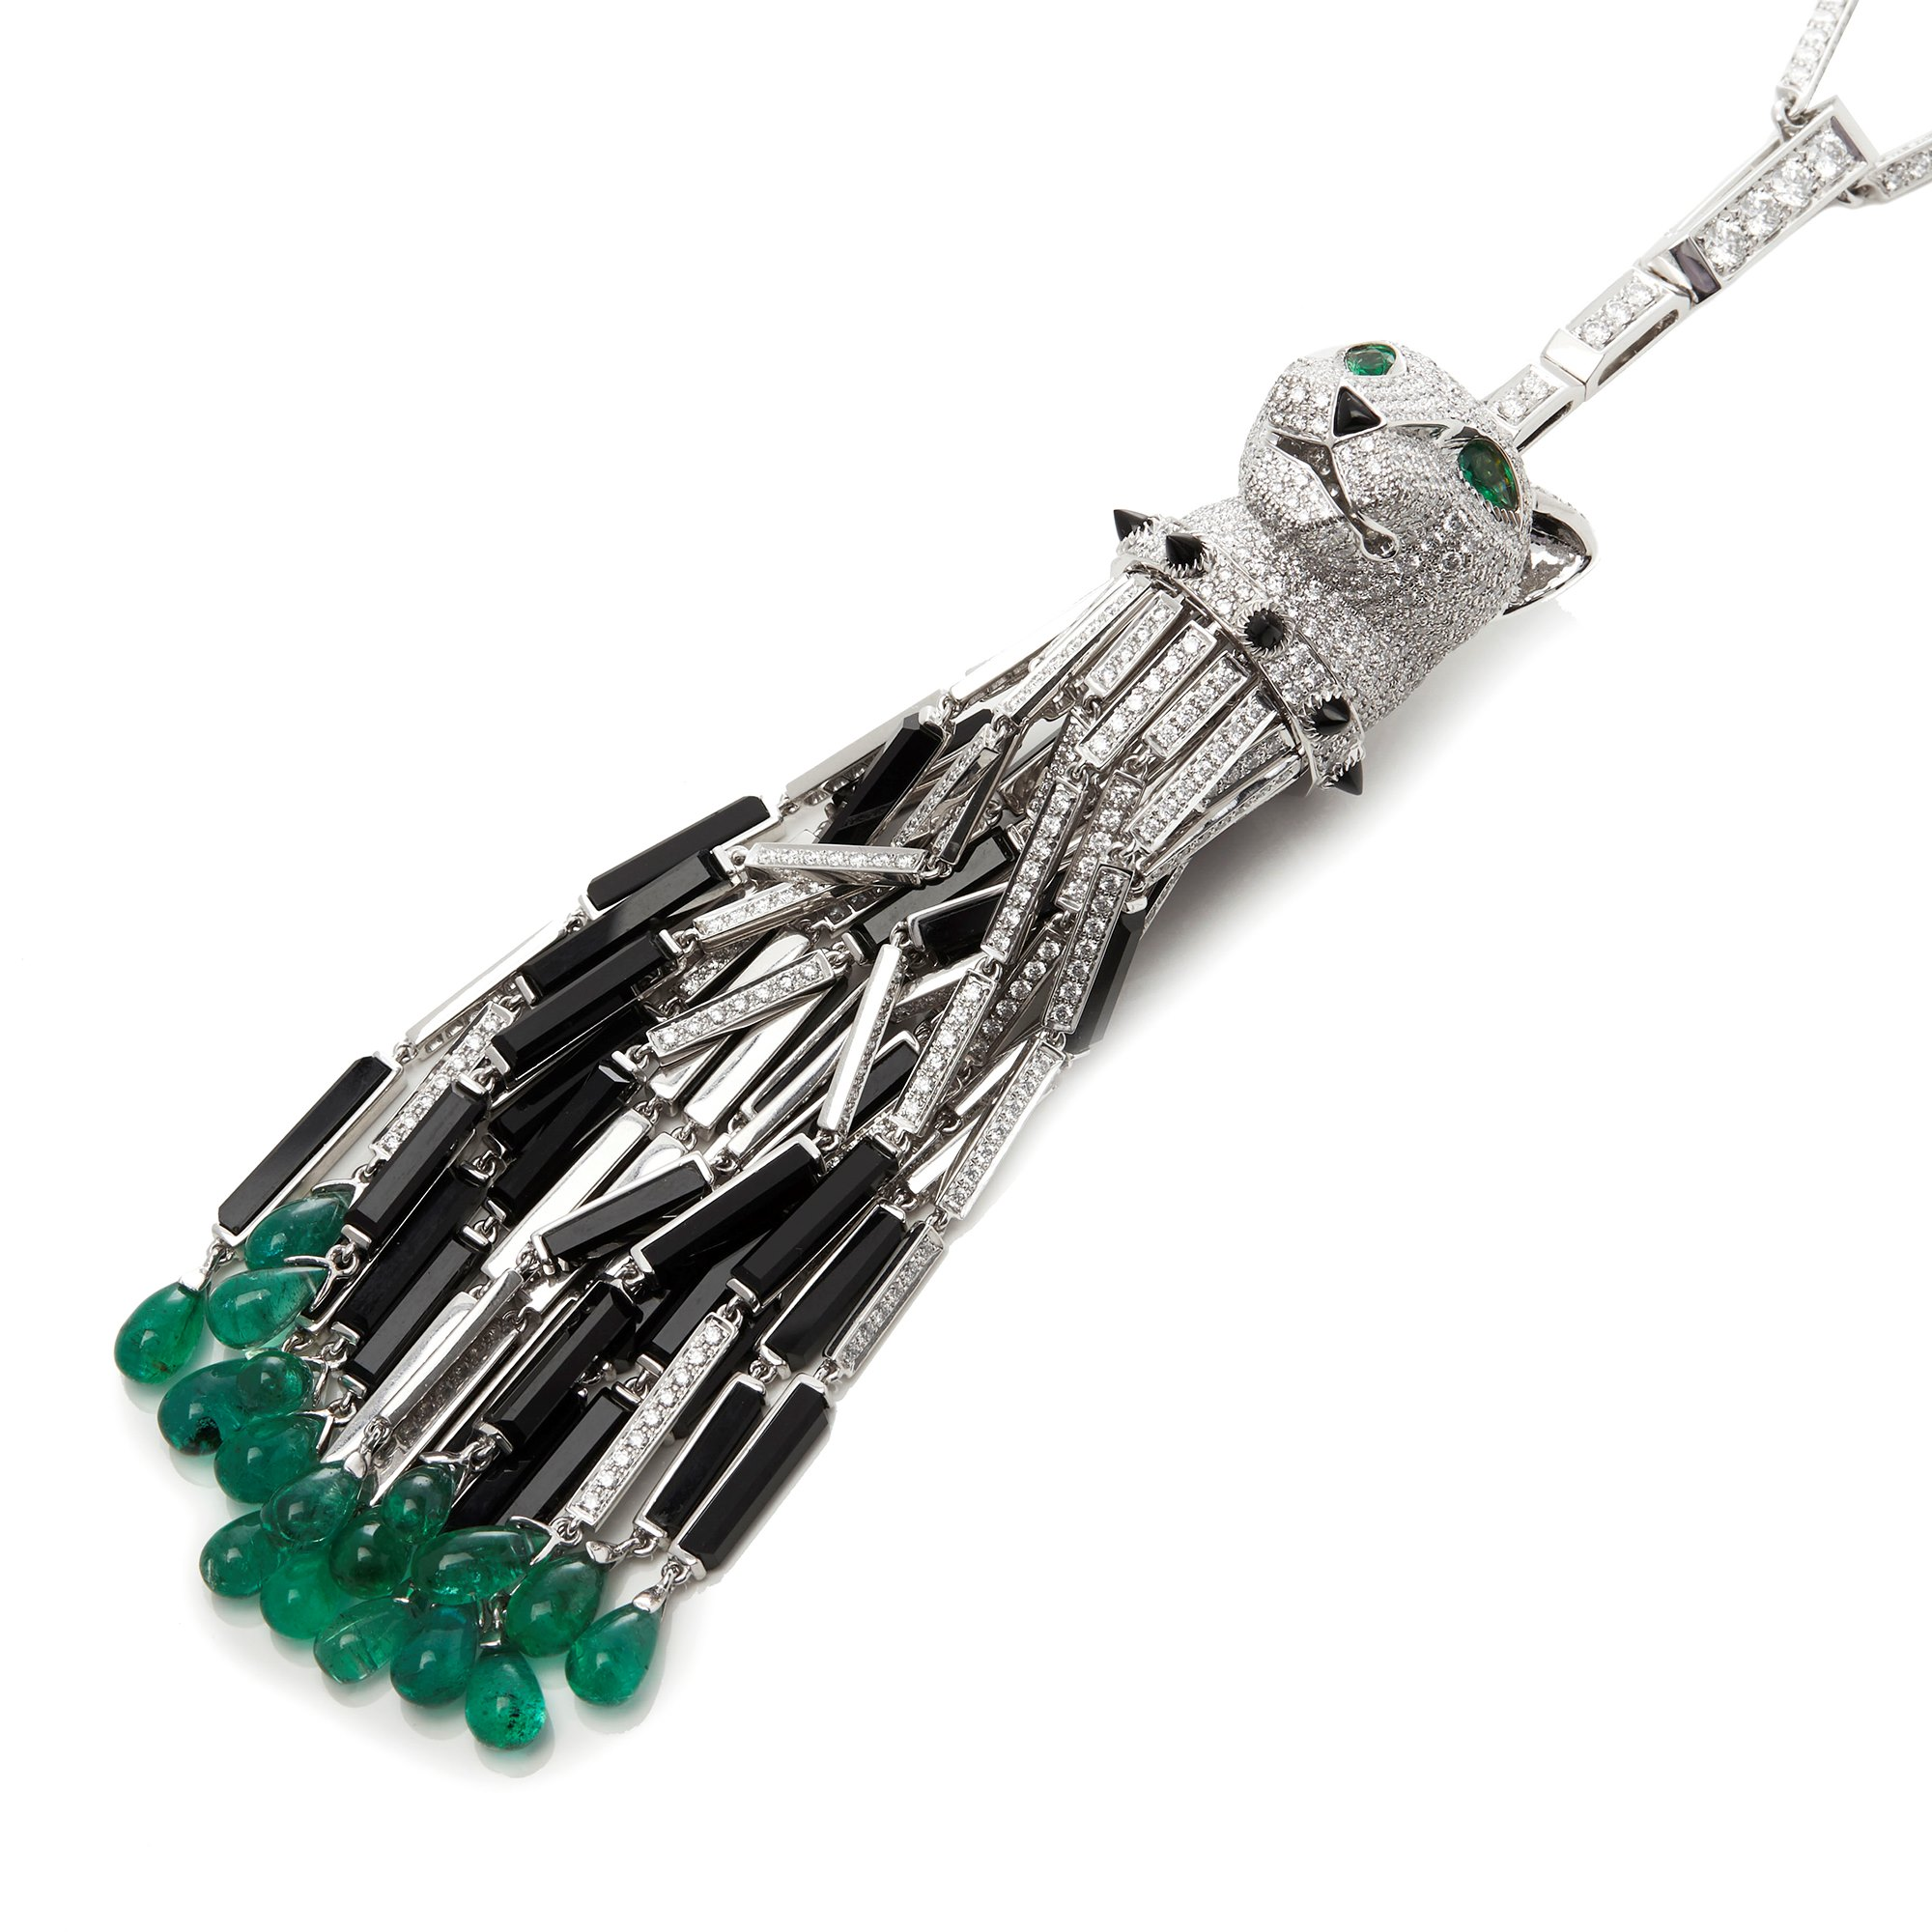 Cartier 18k White Gold Diamond, Emerald & Onyx Panthère Pendant Necklace In The Style Of Cartier